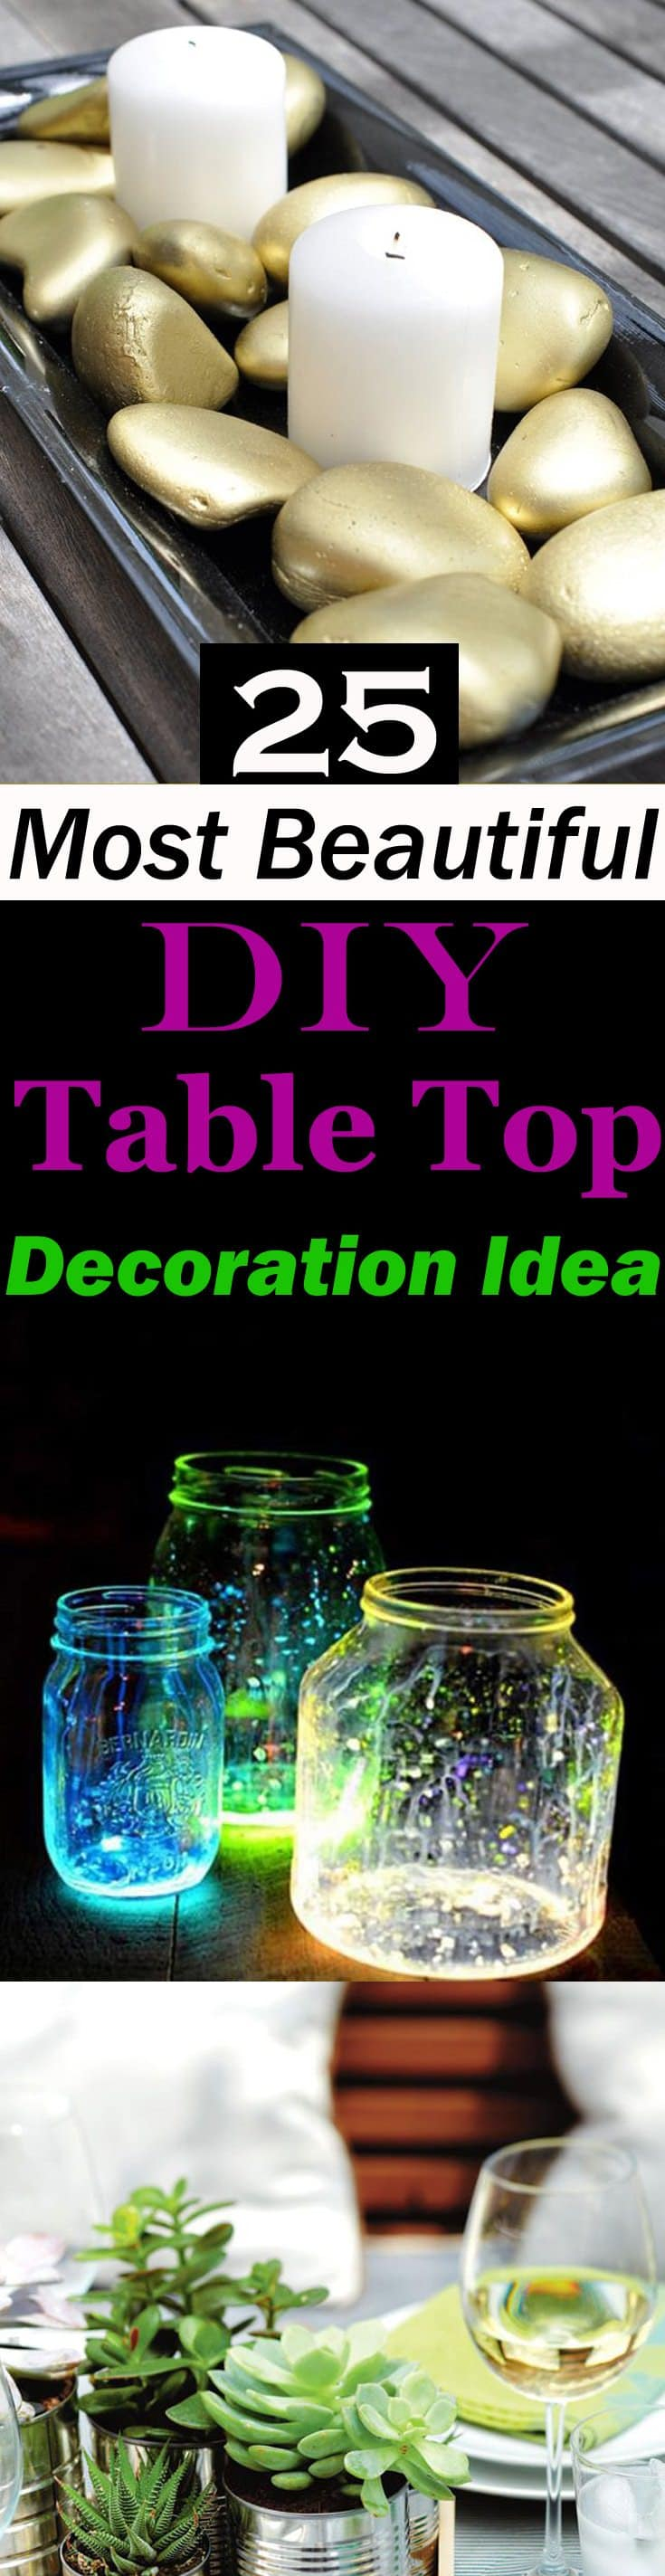 diy tabletop ideas. 25 diy tabletop decoration ideas that you\u0027ll love to follow. easy and exciting diy